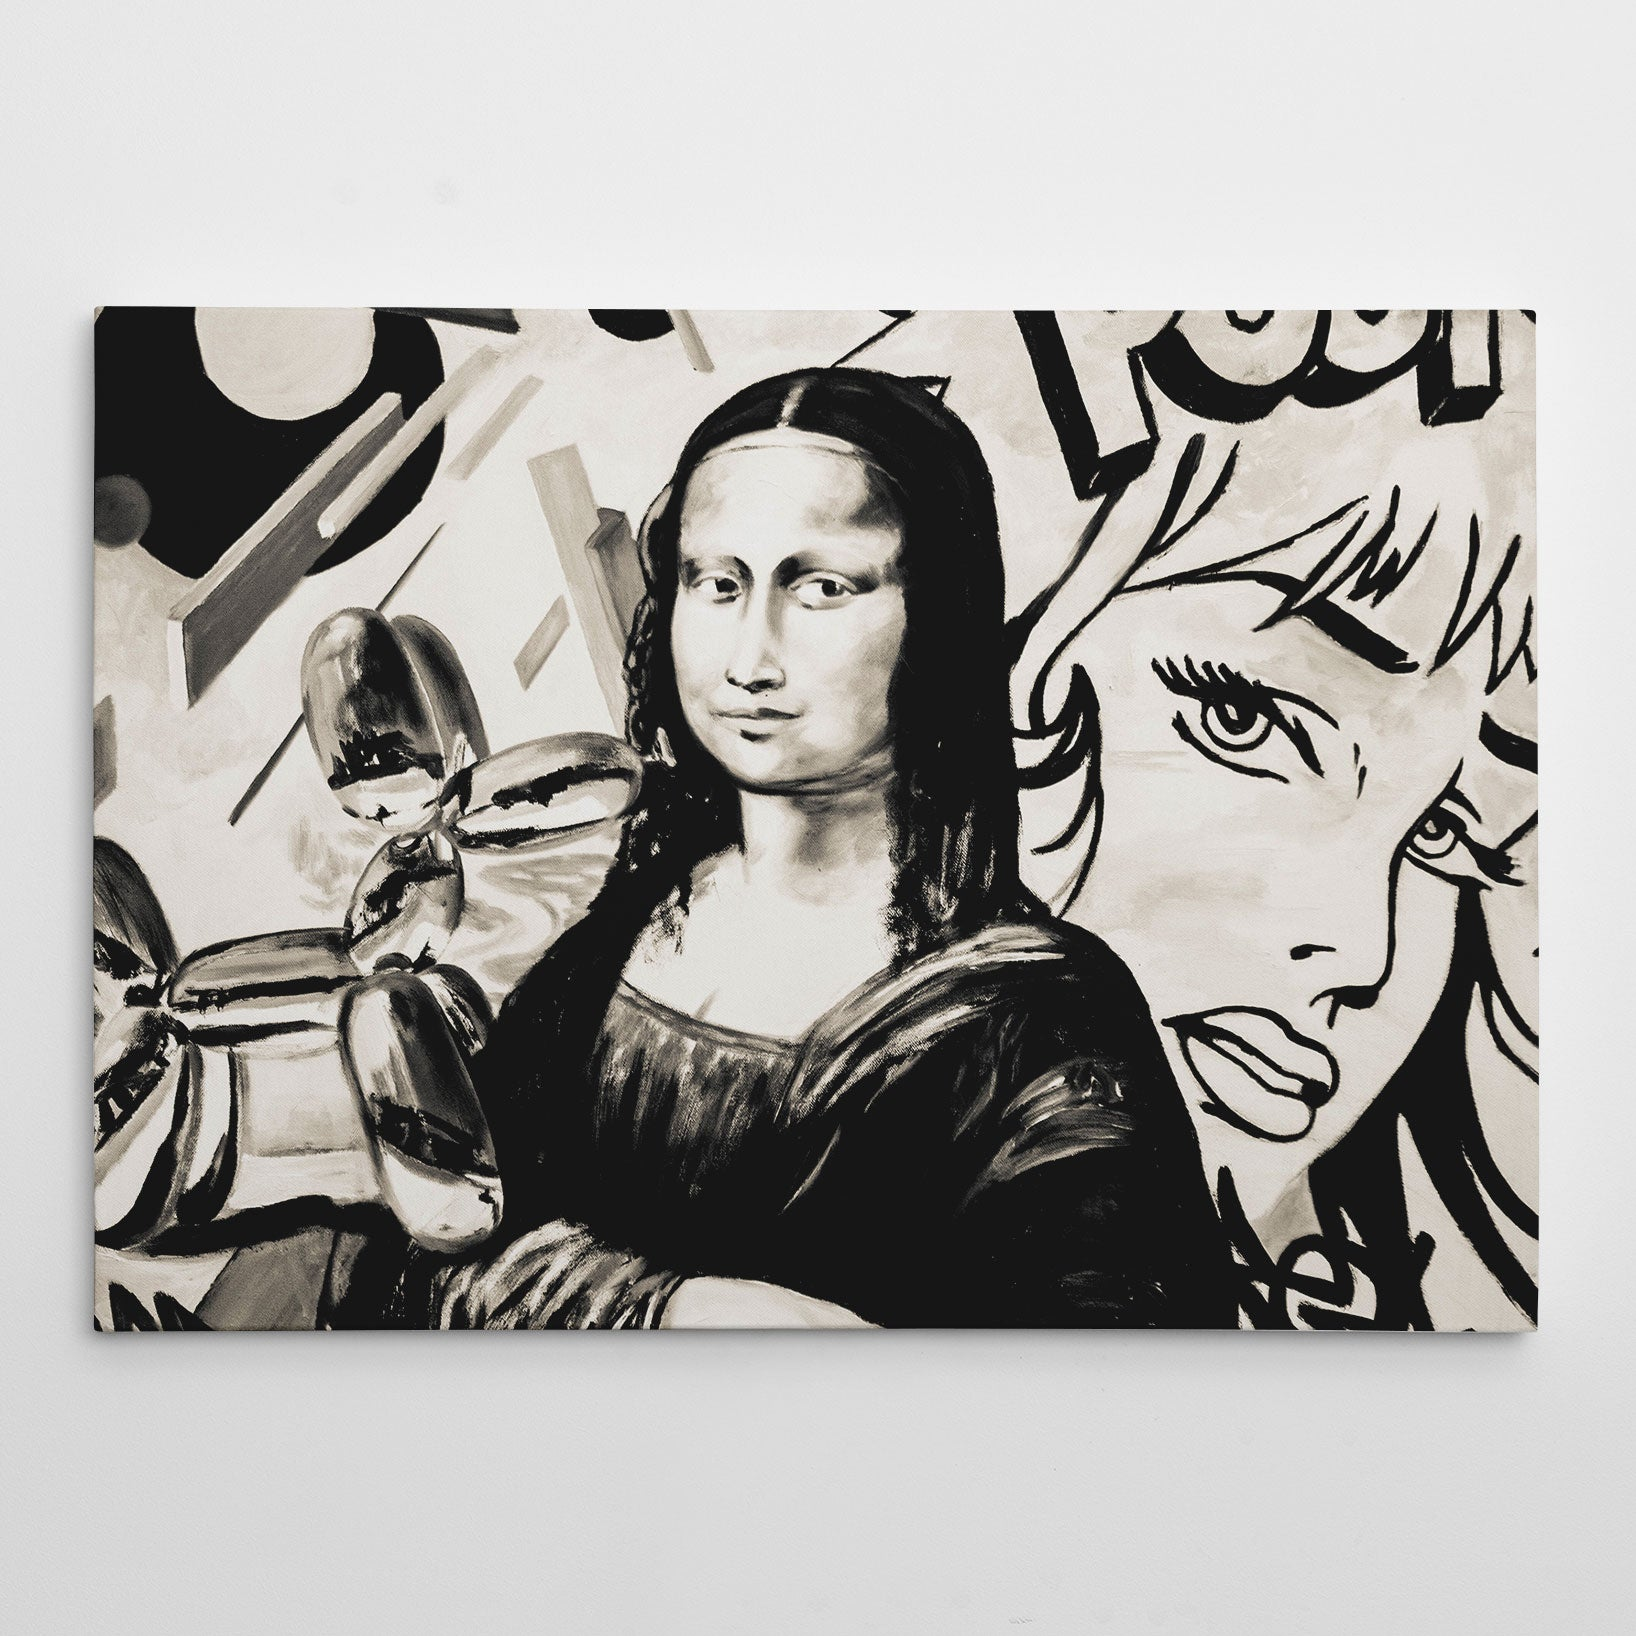 Street art style canvas print of a black and white Mona Lisa's painting, with arts mixture.